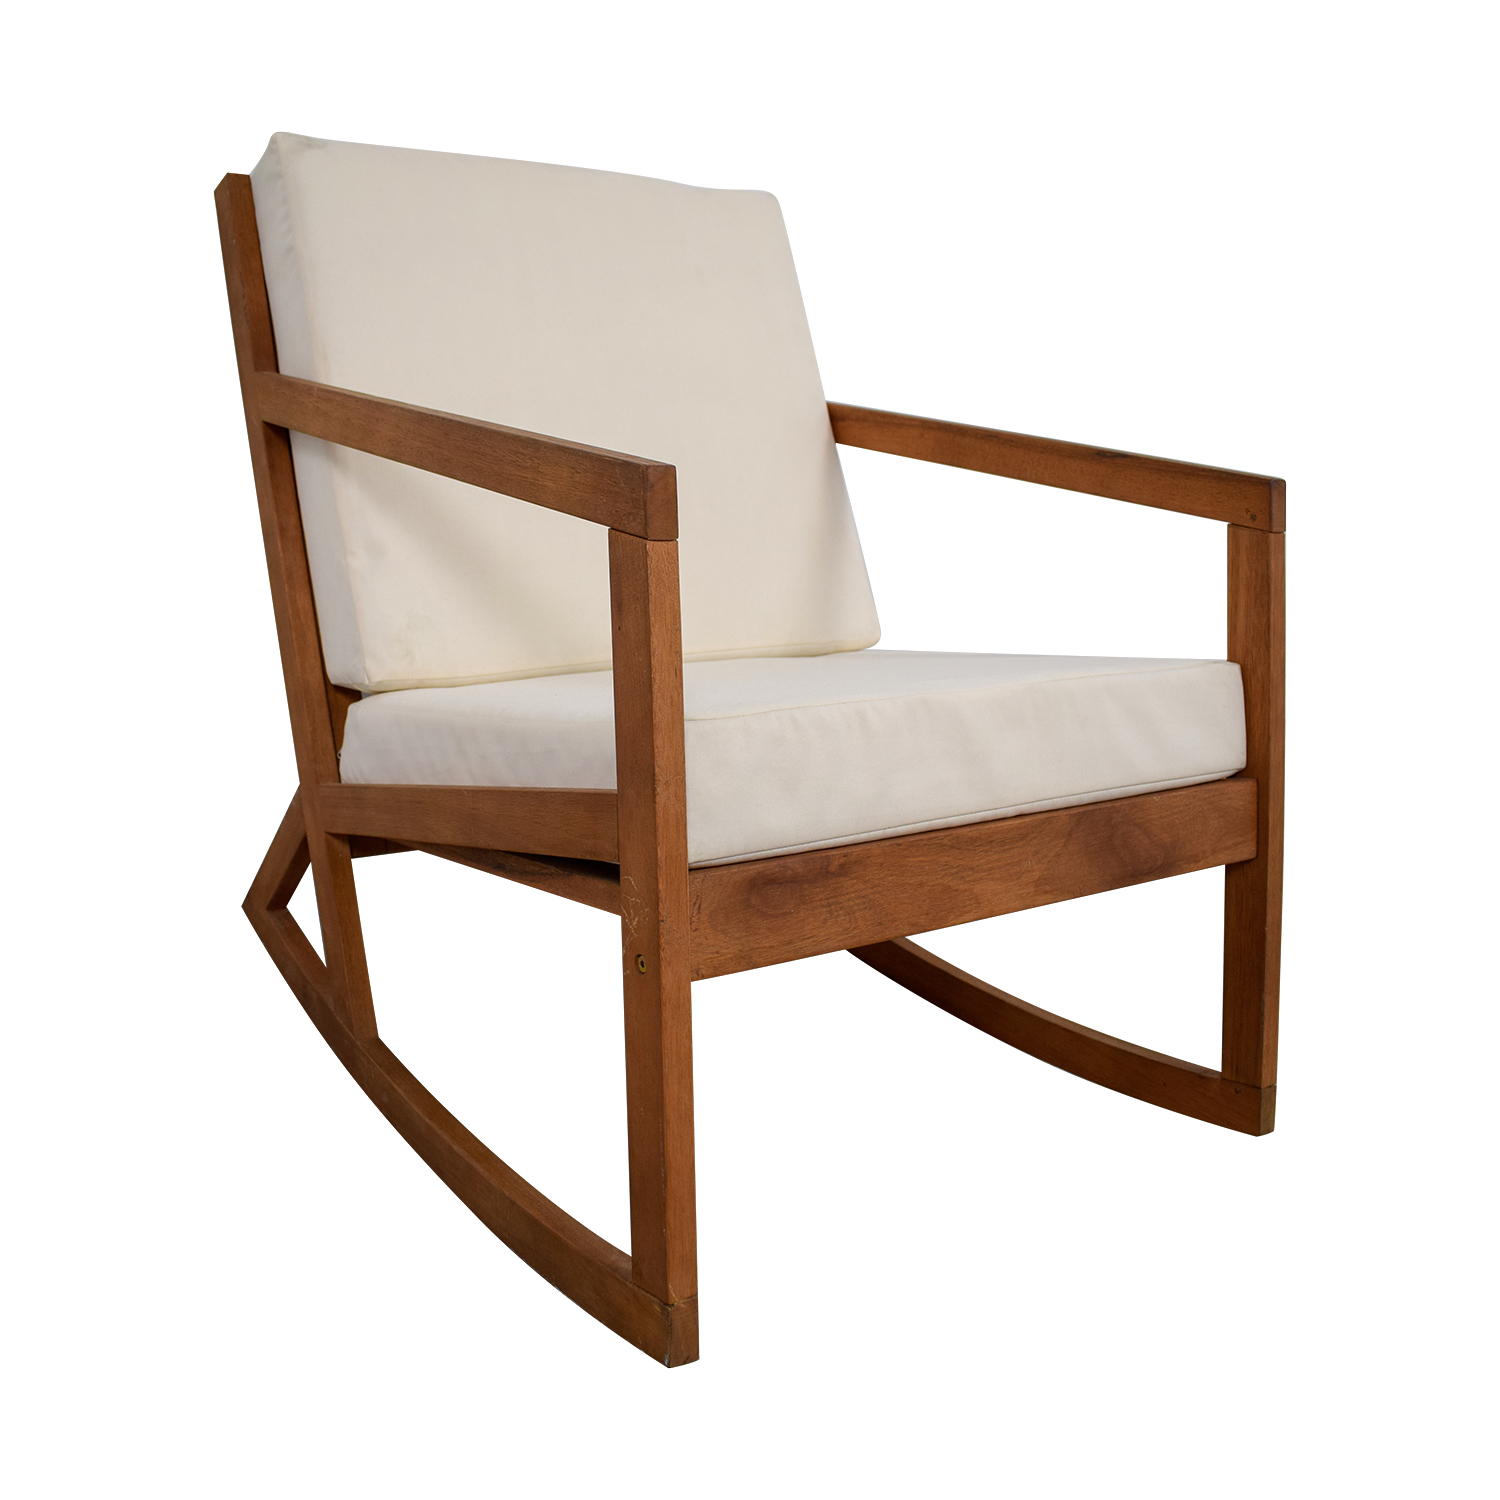 White Wooden Rocking Chairs For Sale 55 Off Safavieh Safavieh White Upholstered Wood Rocking